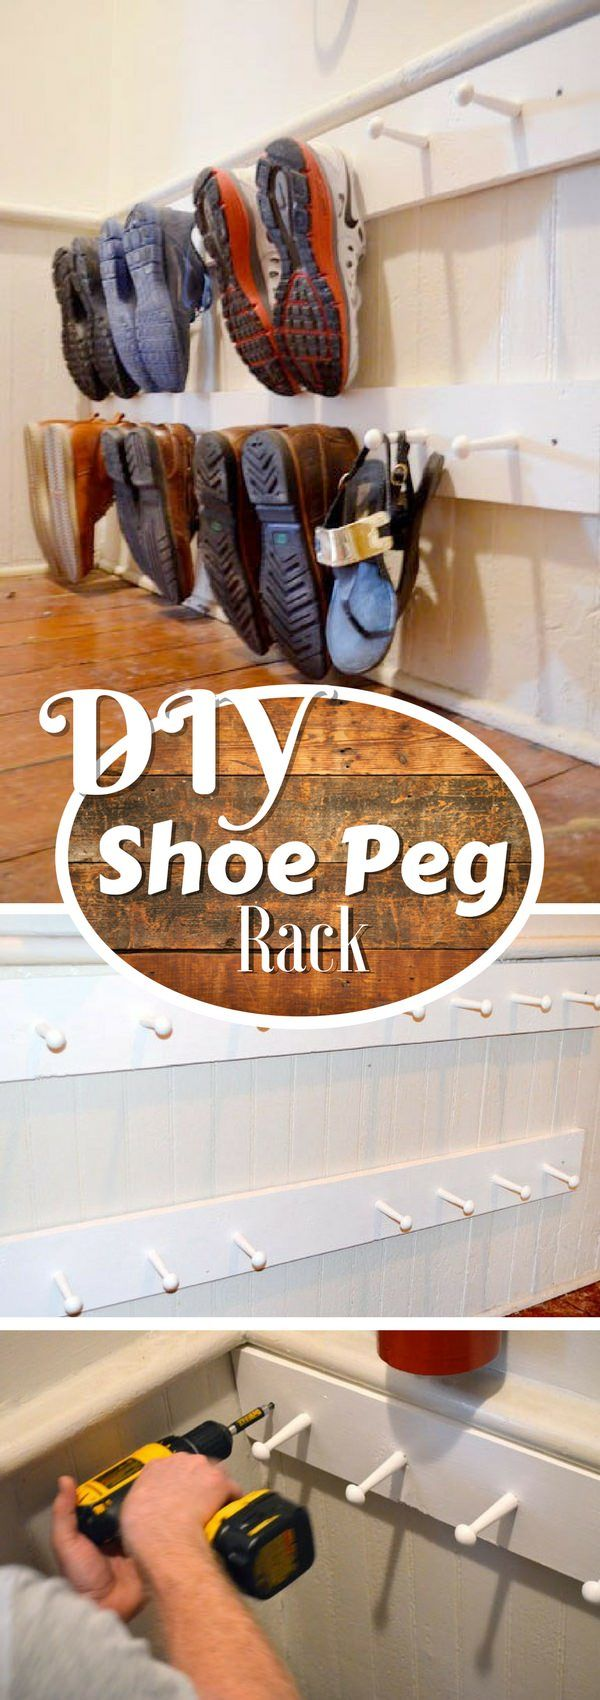 If you are looking to organize your shoes, you will surely love these clever ideas.